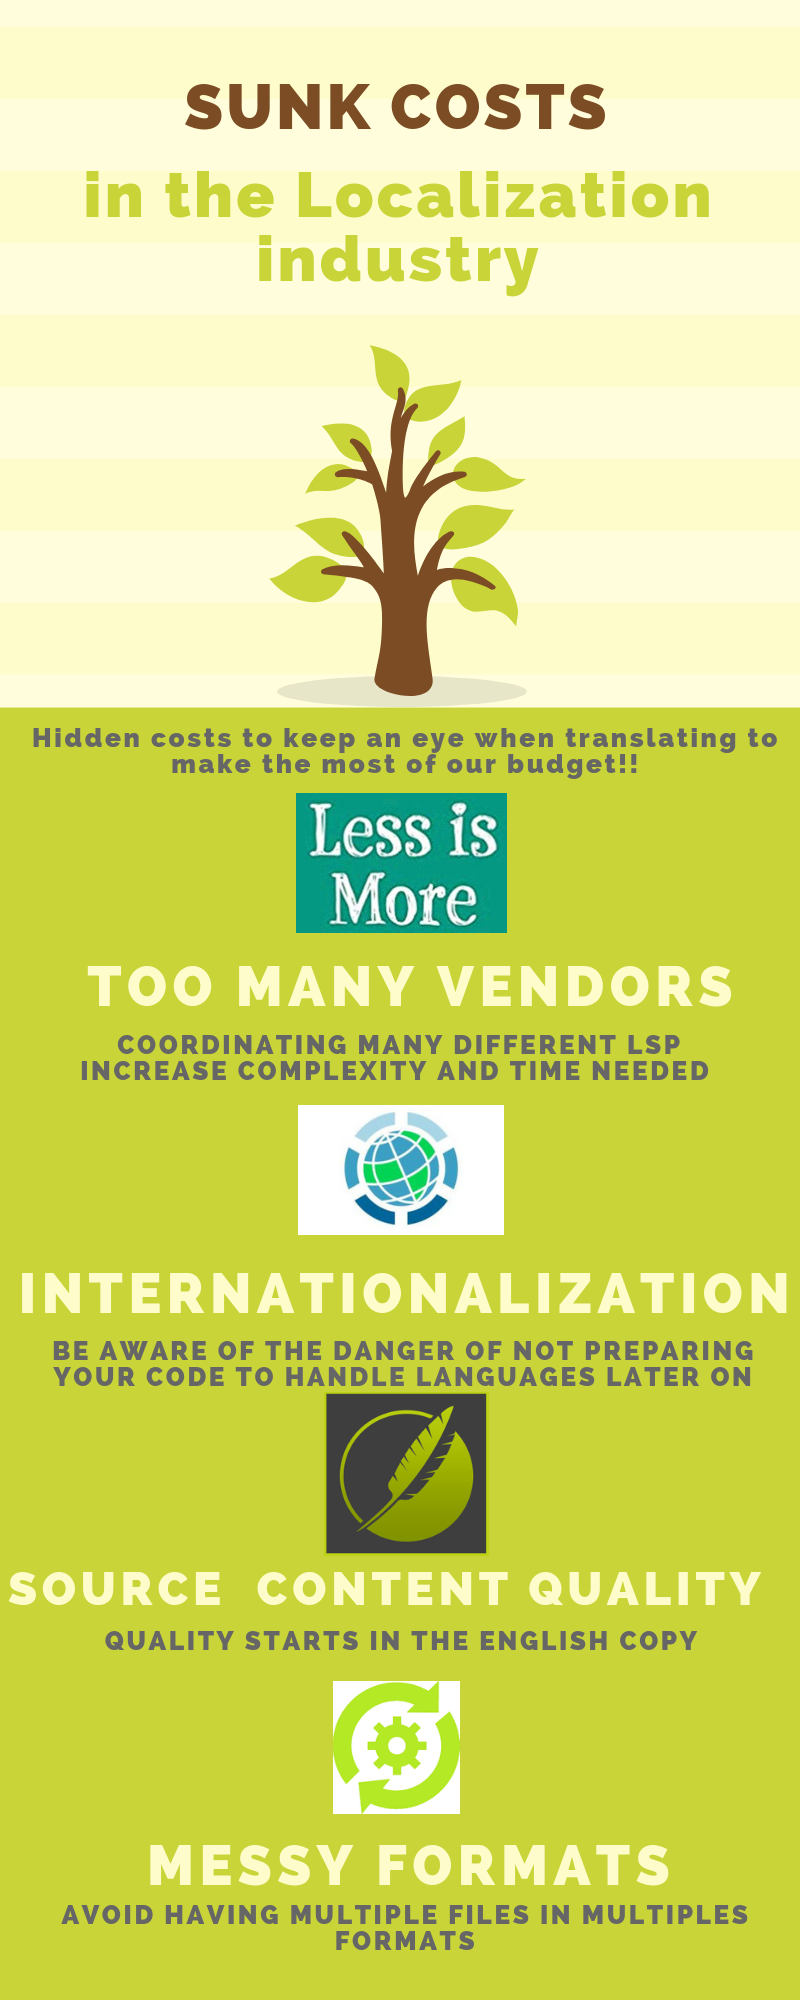 Click  HERE  to download the infographic